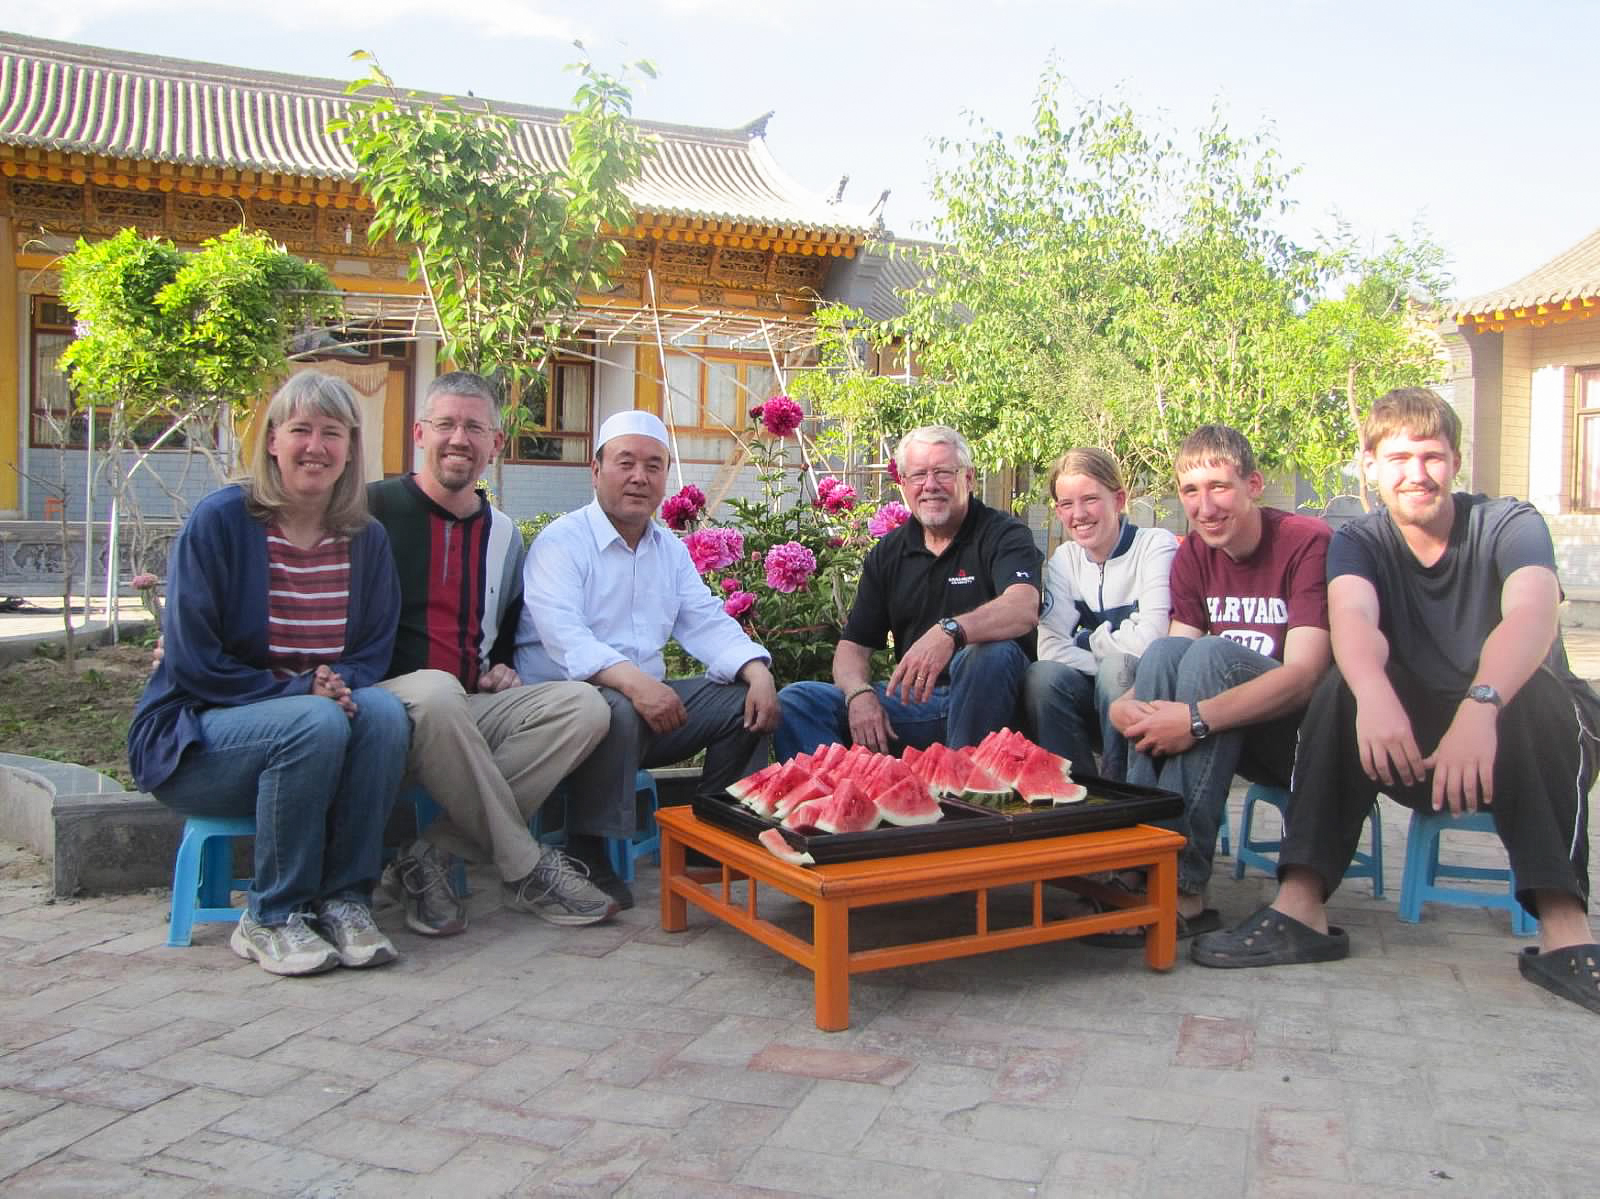 Eating watermelon with our host in the courtyard of his home while Jodie's dad was visiting